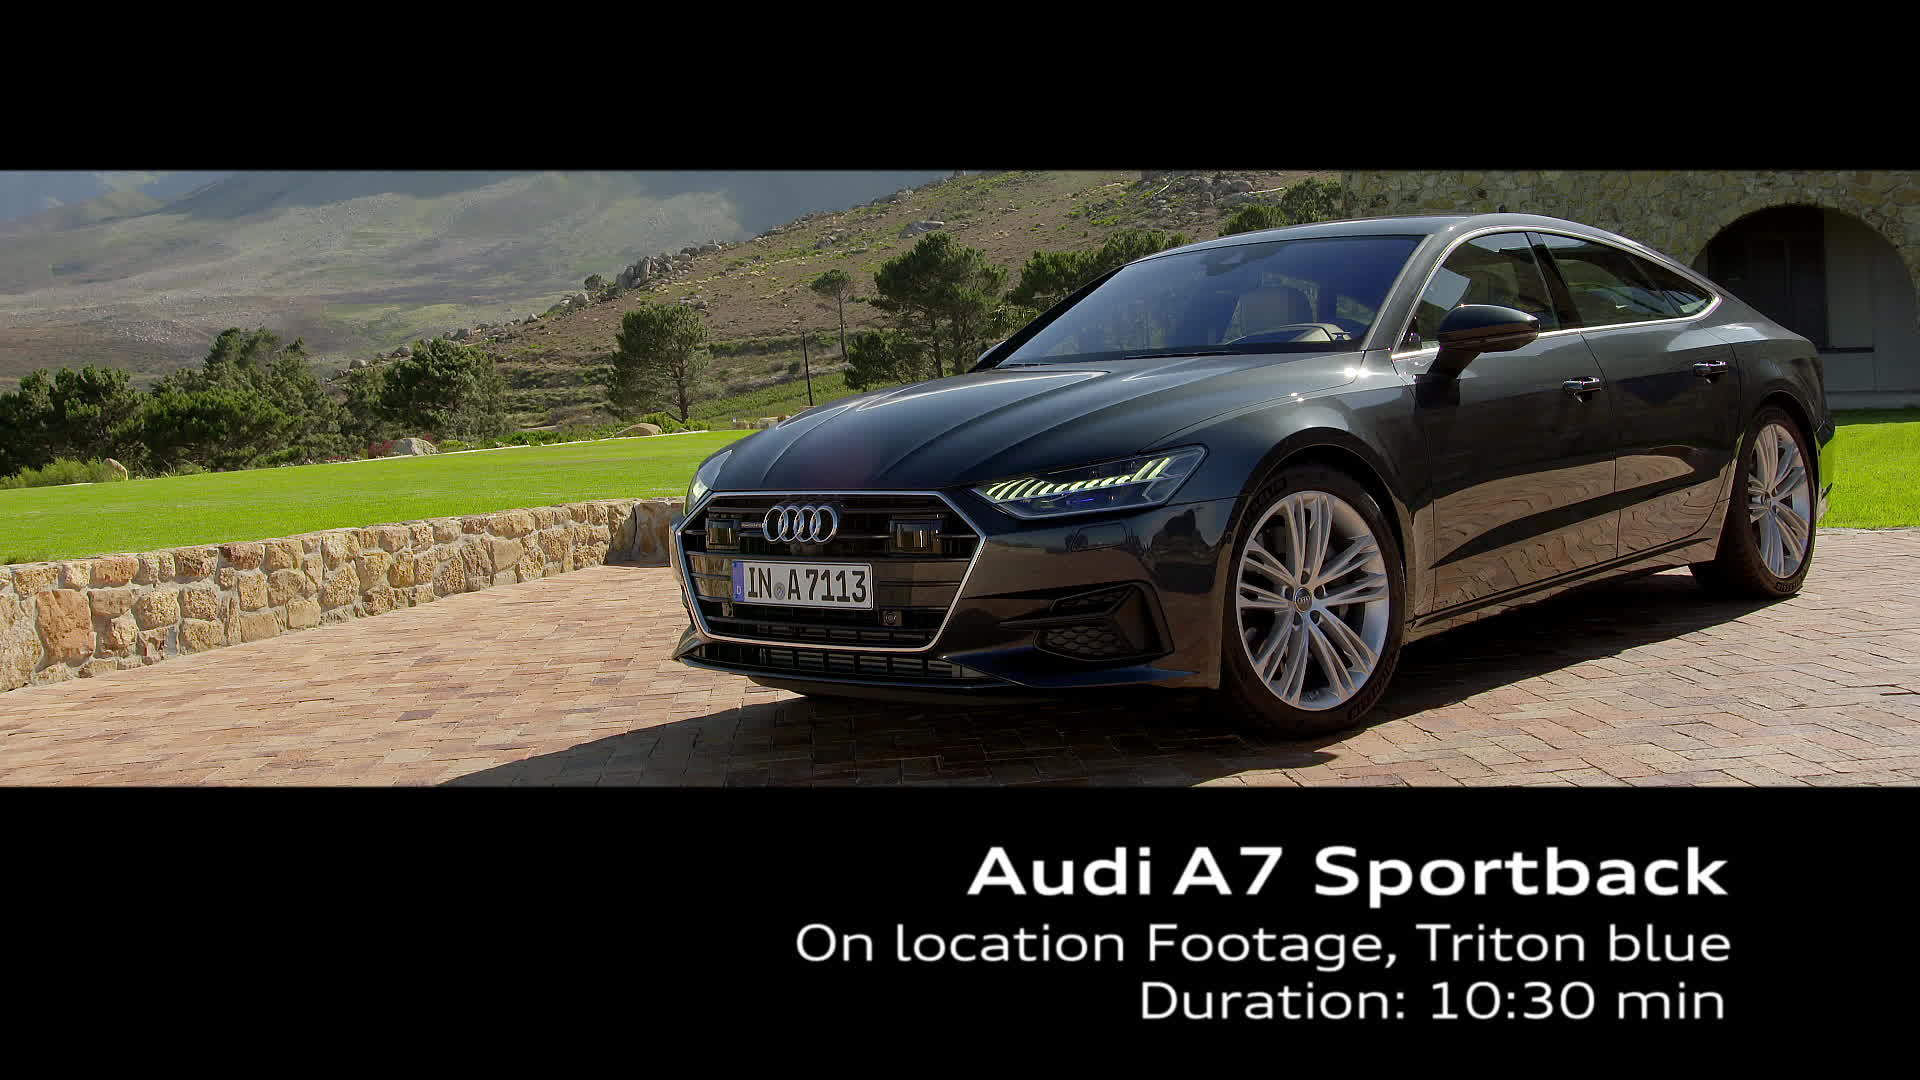 Audi A7 Sportback in Tritonblau – on Location Footage Kapstadt